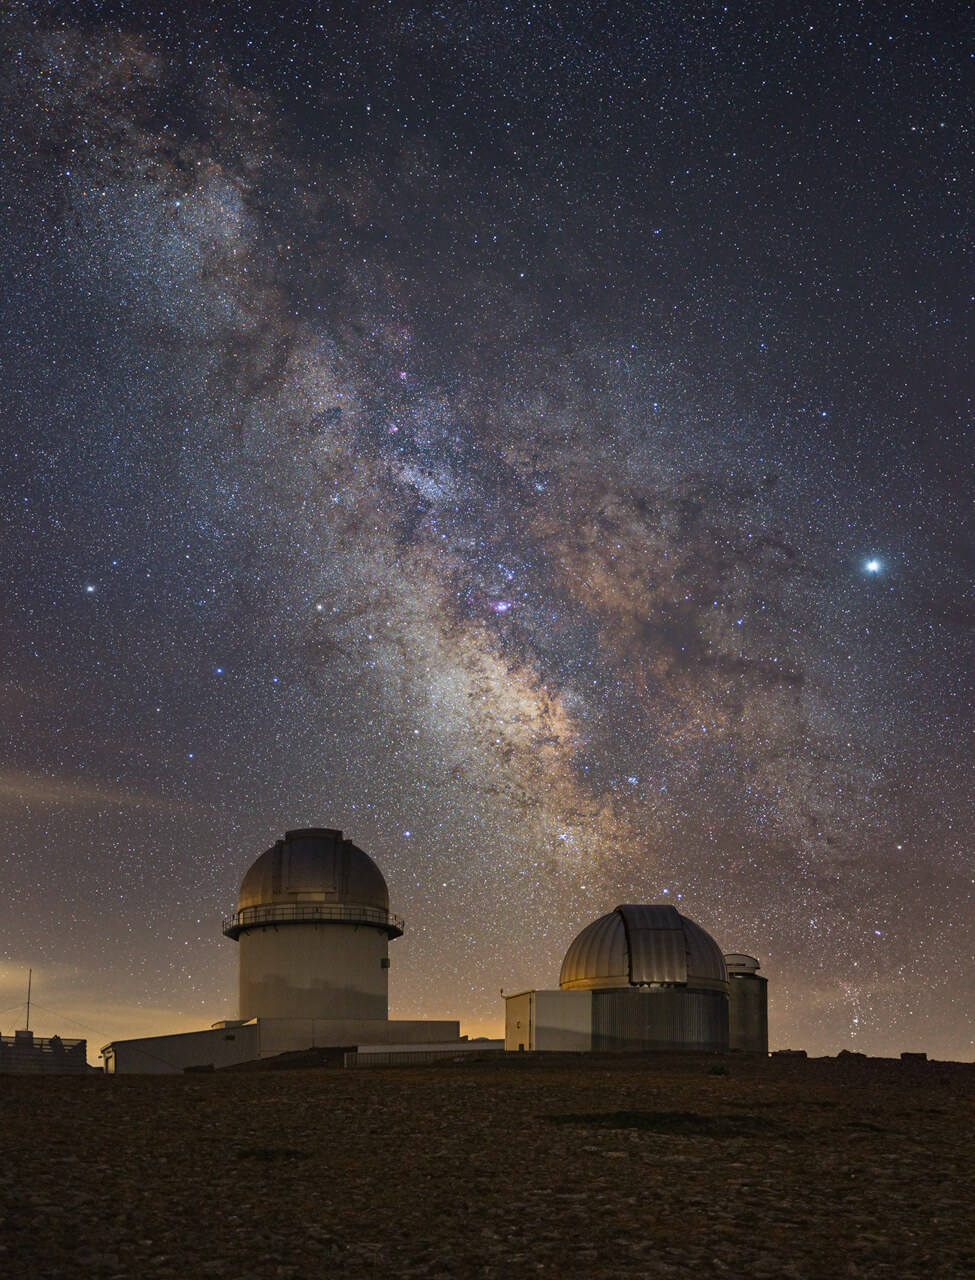 Detailed Milky Way over the observatory